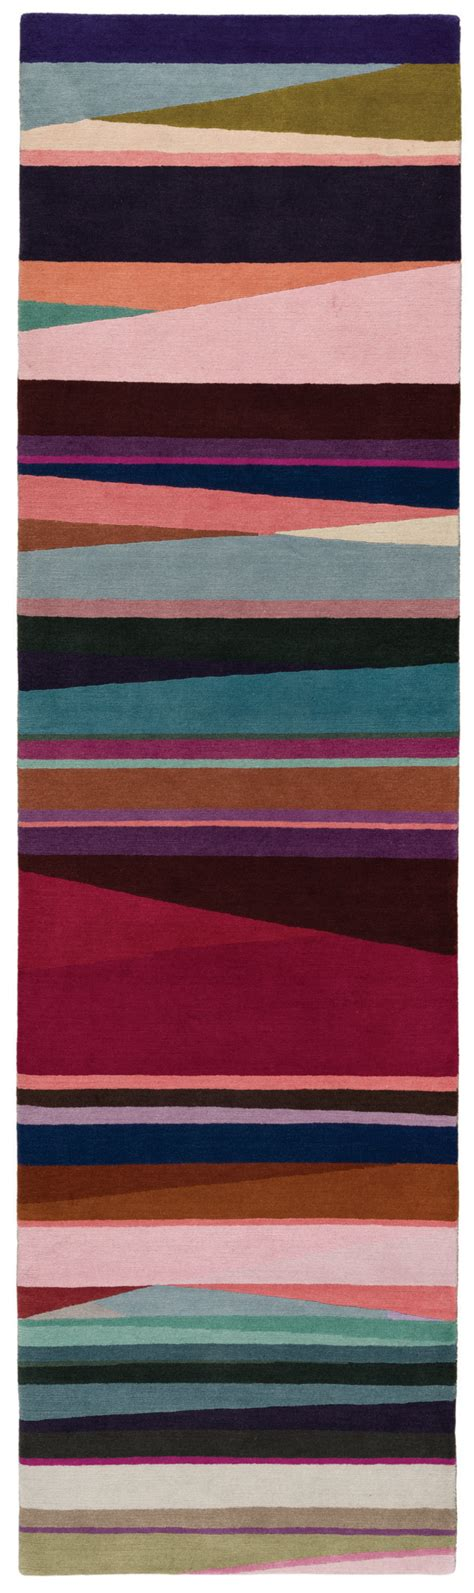 Business Rugs by Textile Curator Paul Smith For The Rug Company